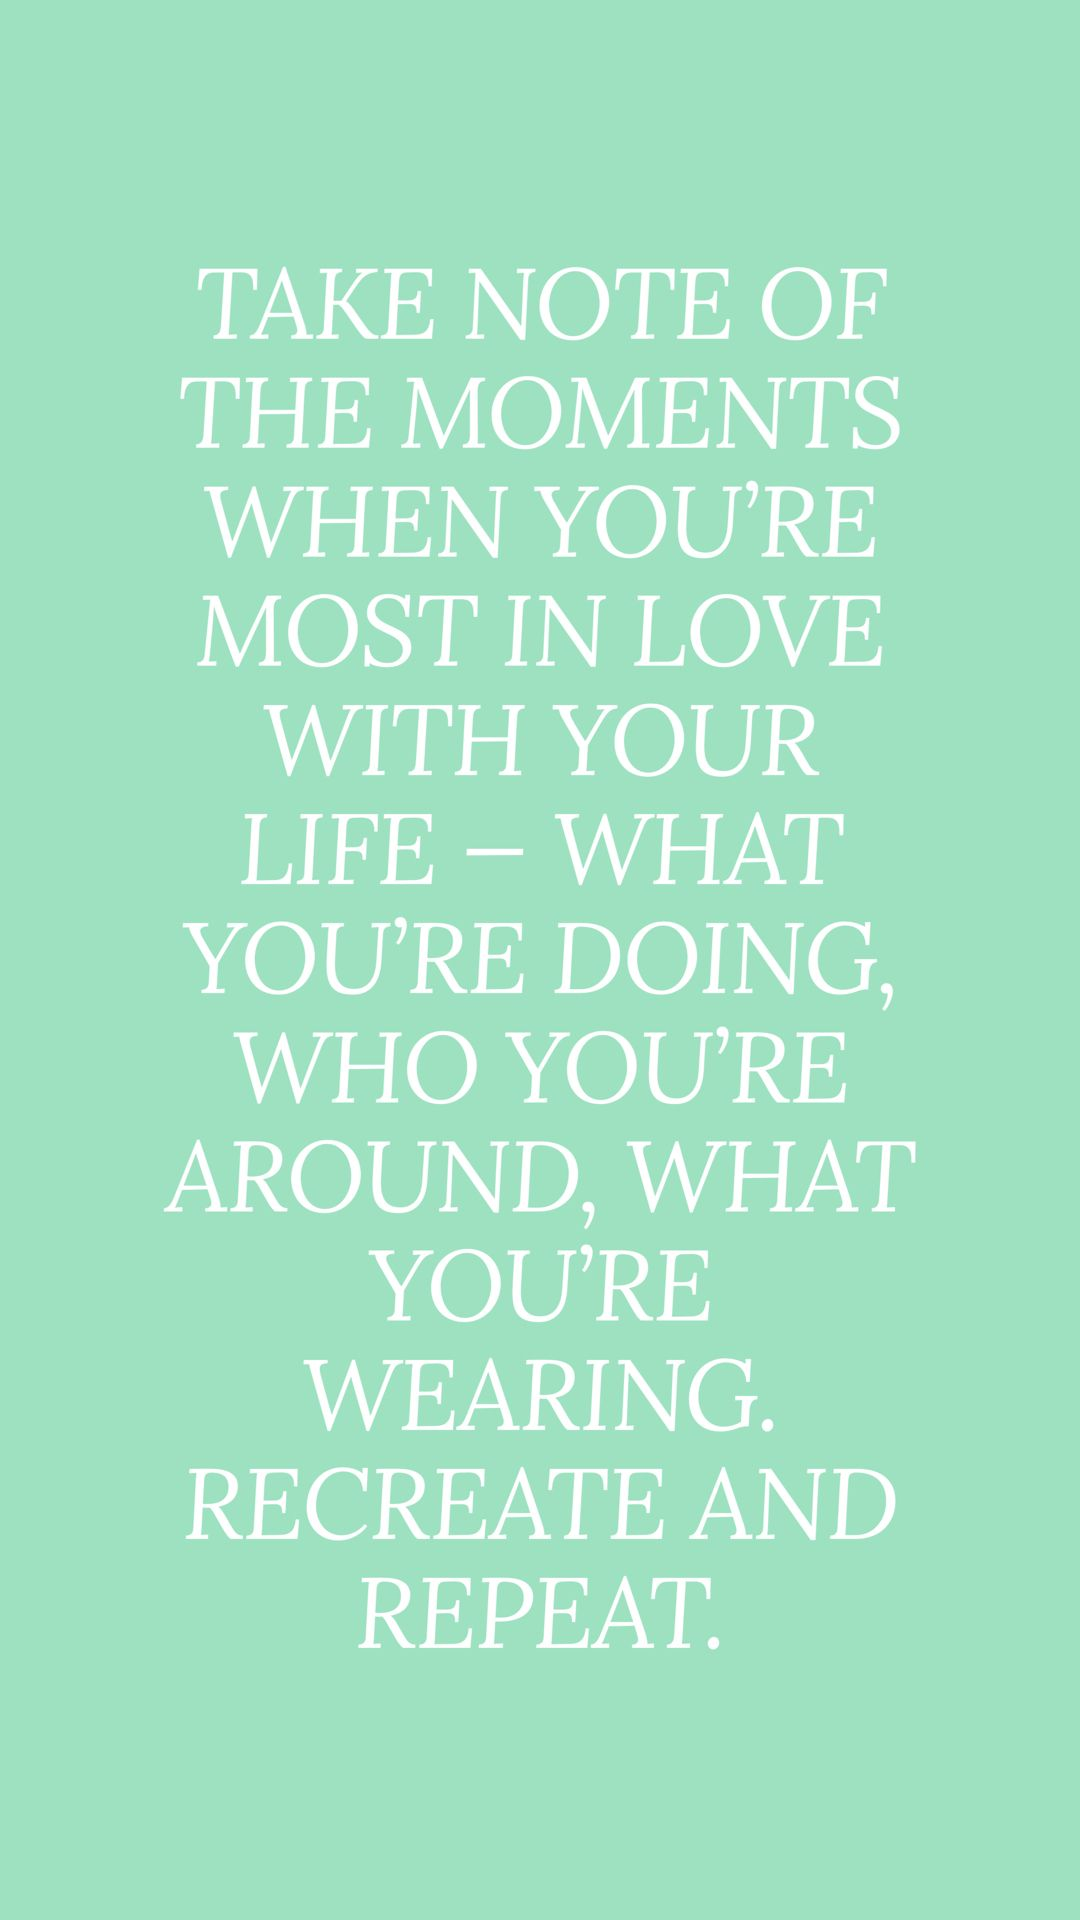 How to love your life #quotesforwallpaper